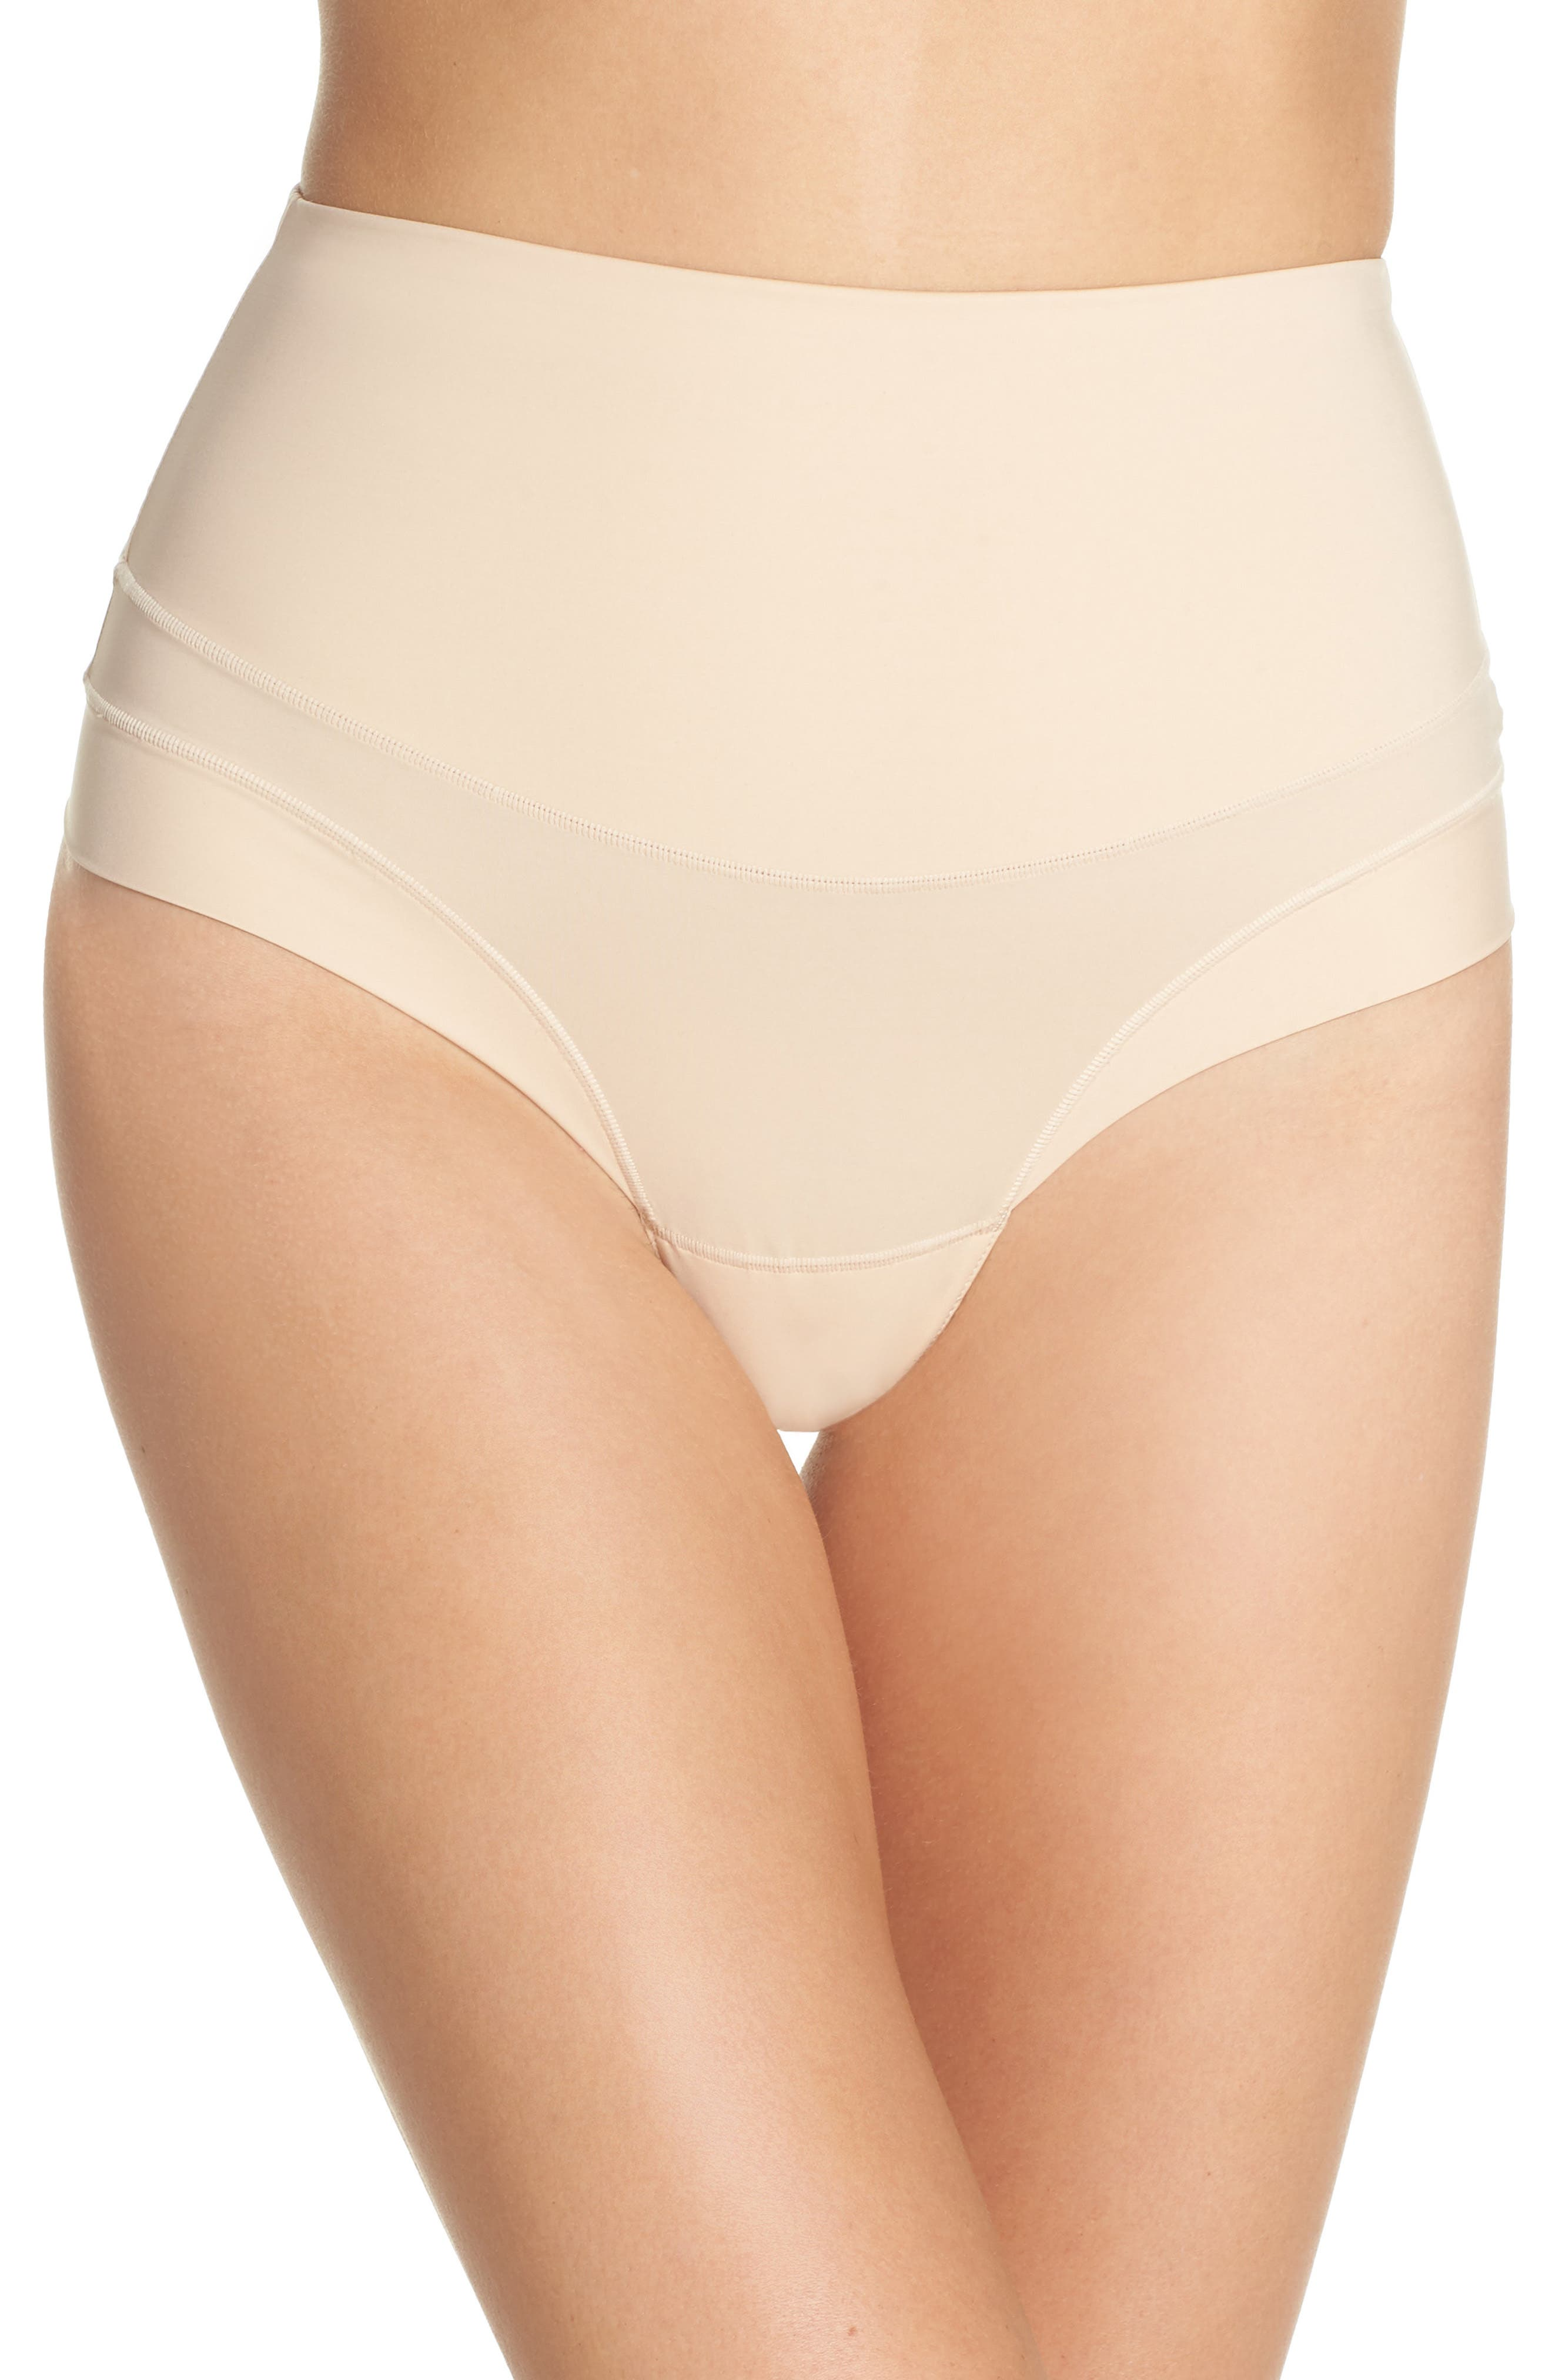 Tummie Tamers Mid Waist Thong,                             Main thumbnail 1, color,                             Frappe